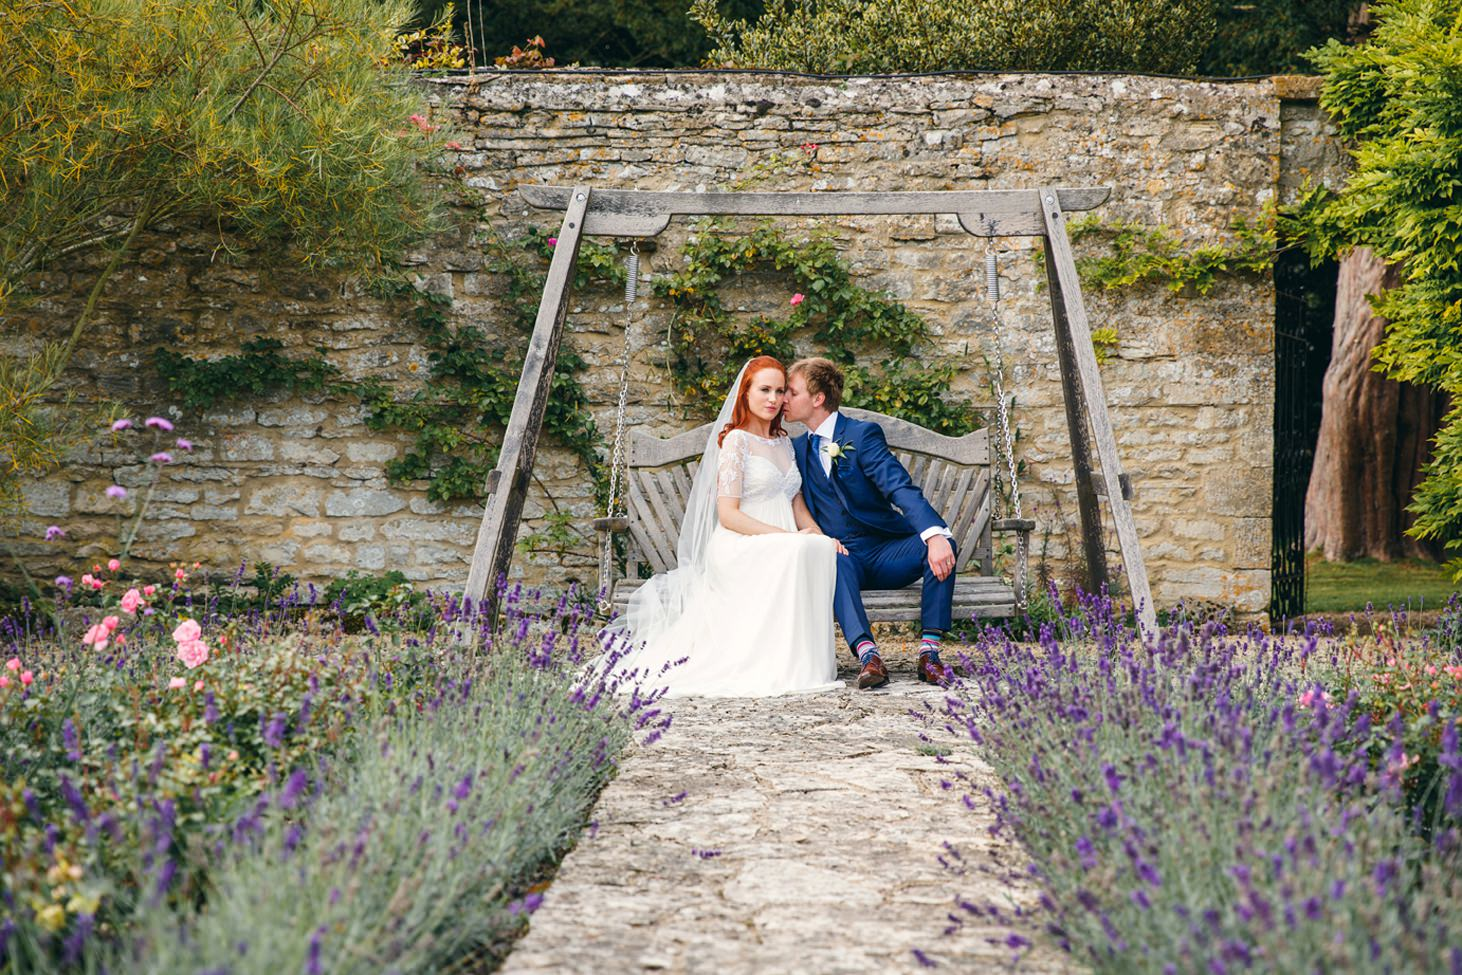 caswell house wedding photography bride and groom on garden seat